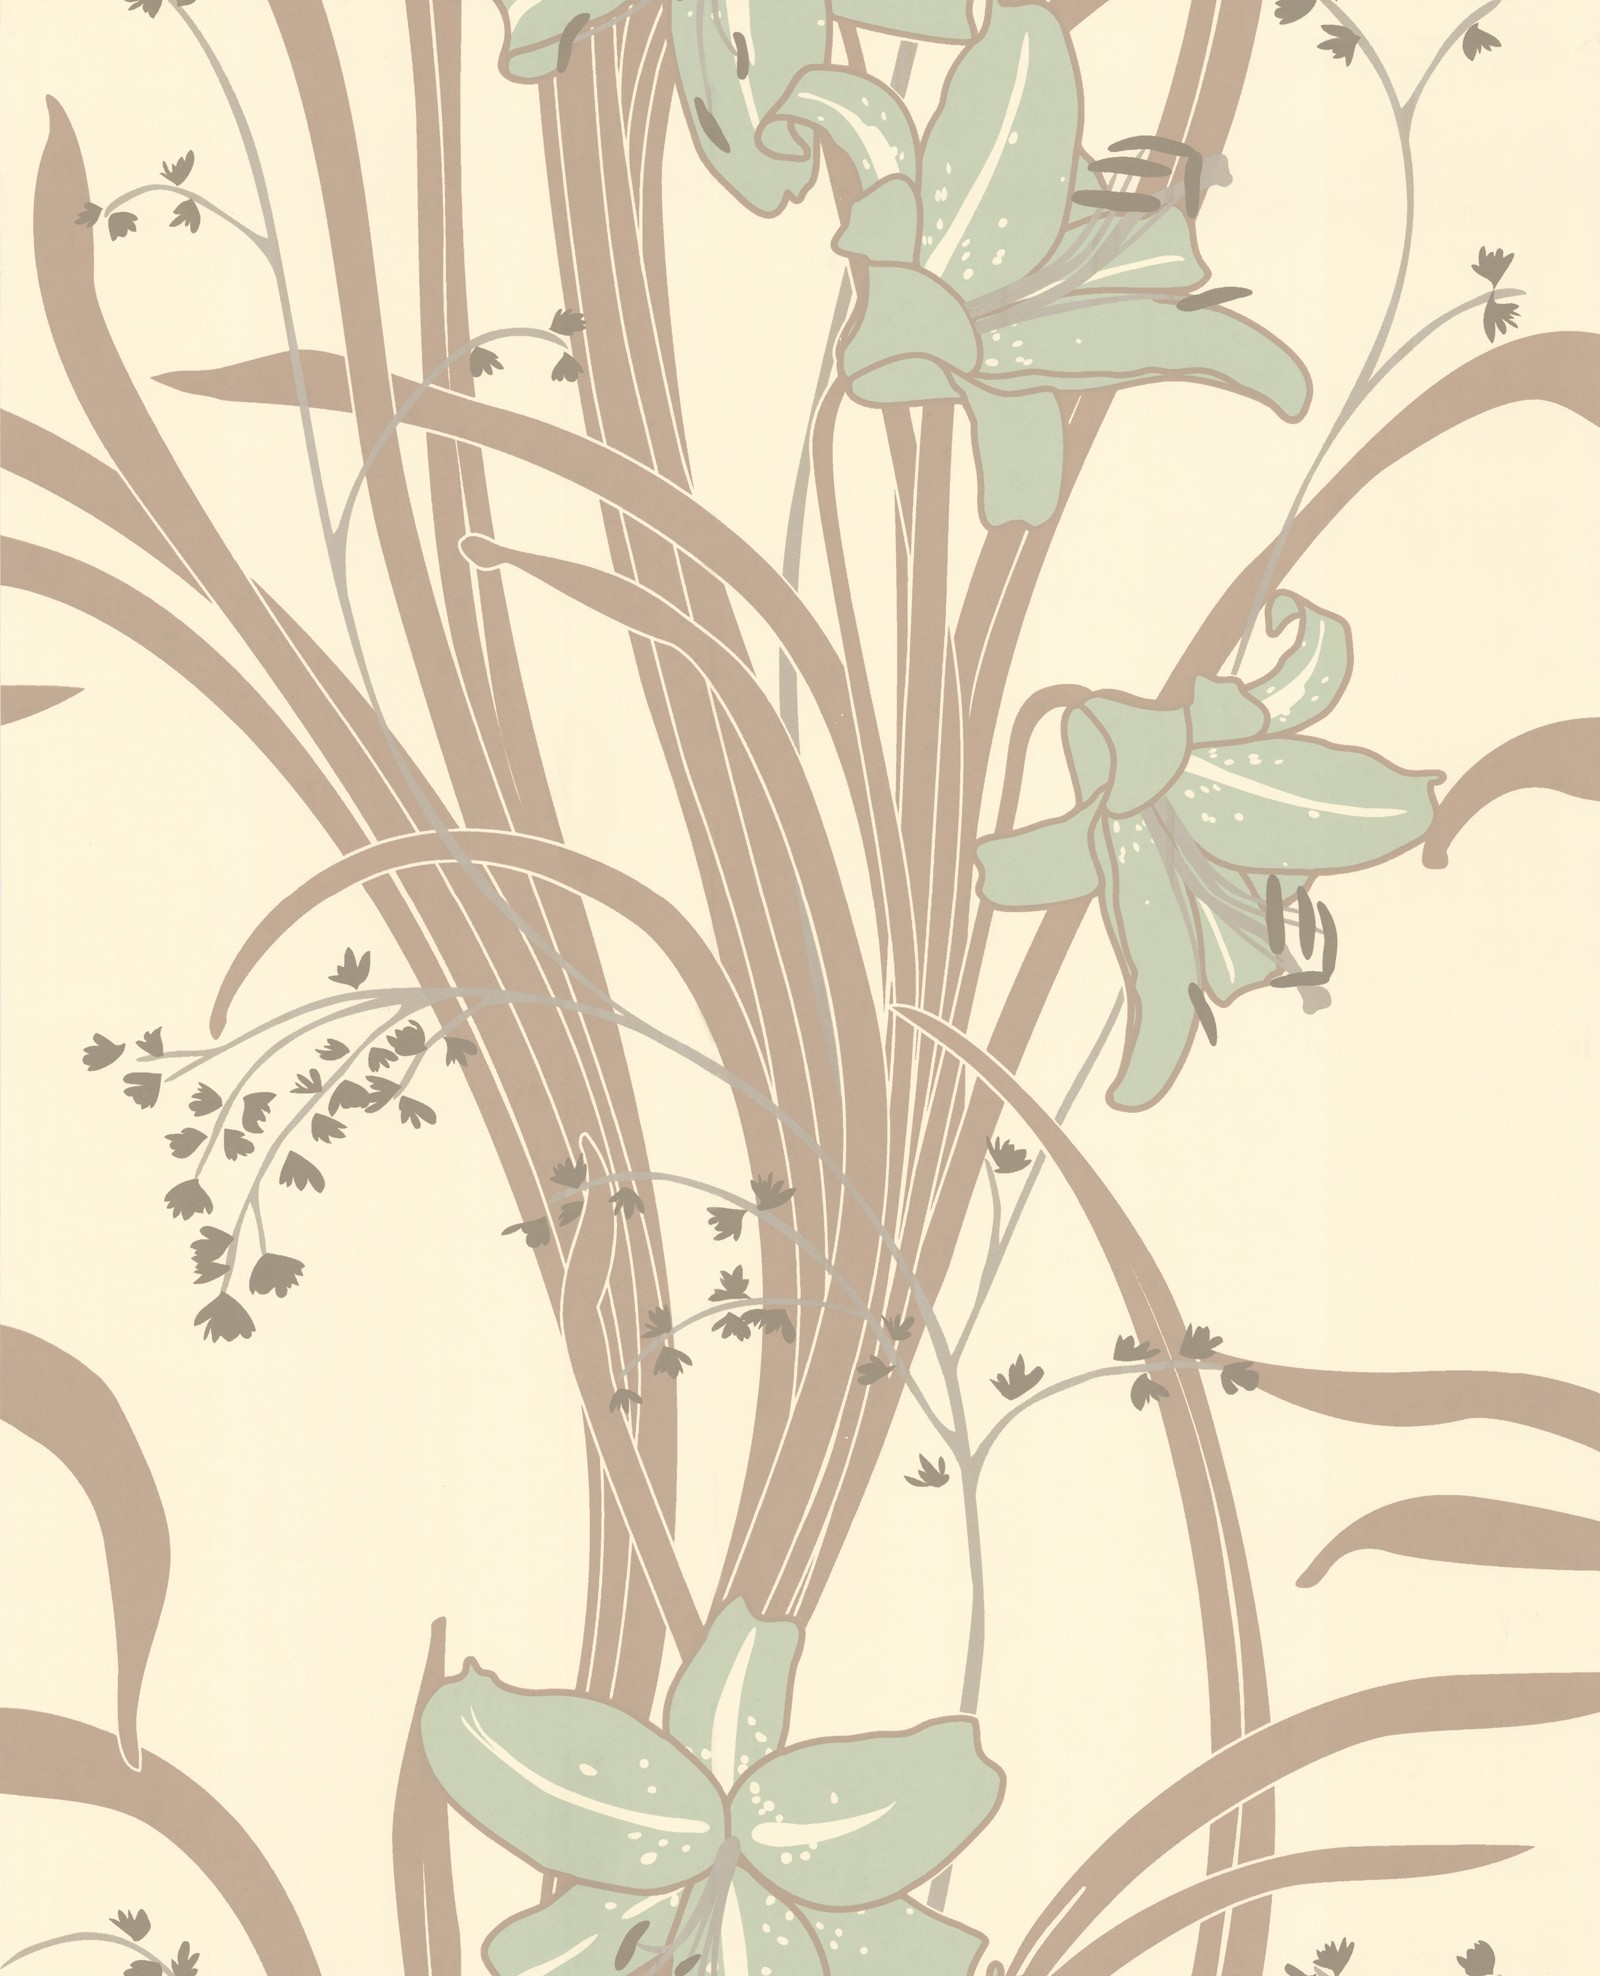 Art deco background download free awesome full hd for Art et decoration download